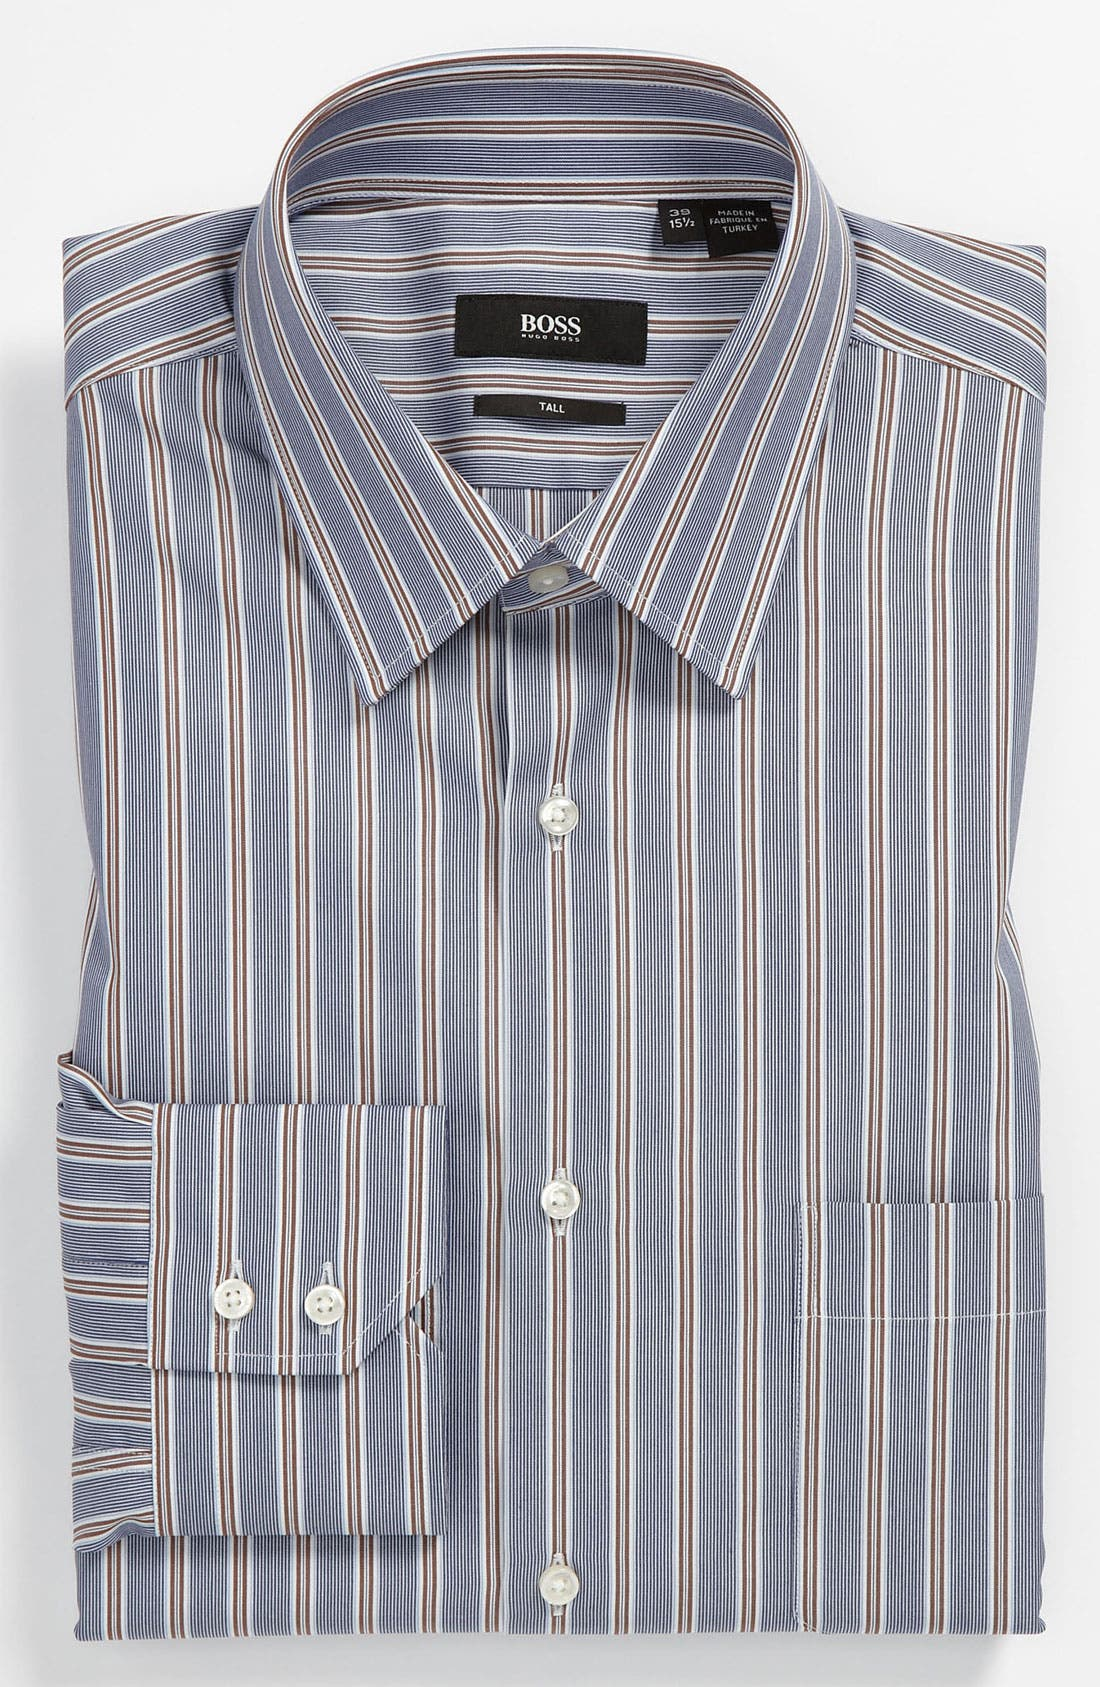 Main Image - BOSS Black Regular Fit Non-Iron Dress Shirt (Big & Tall) (Online Exclusive)